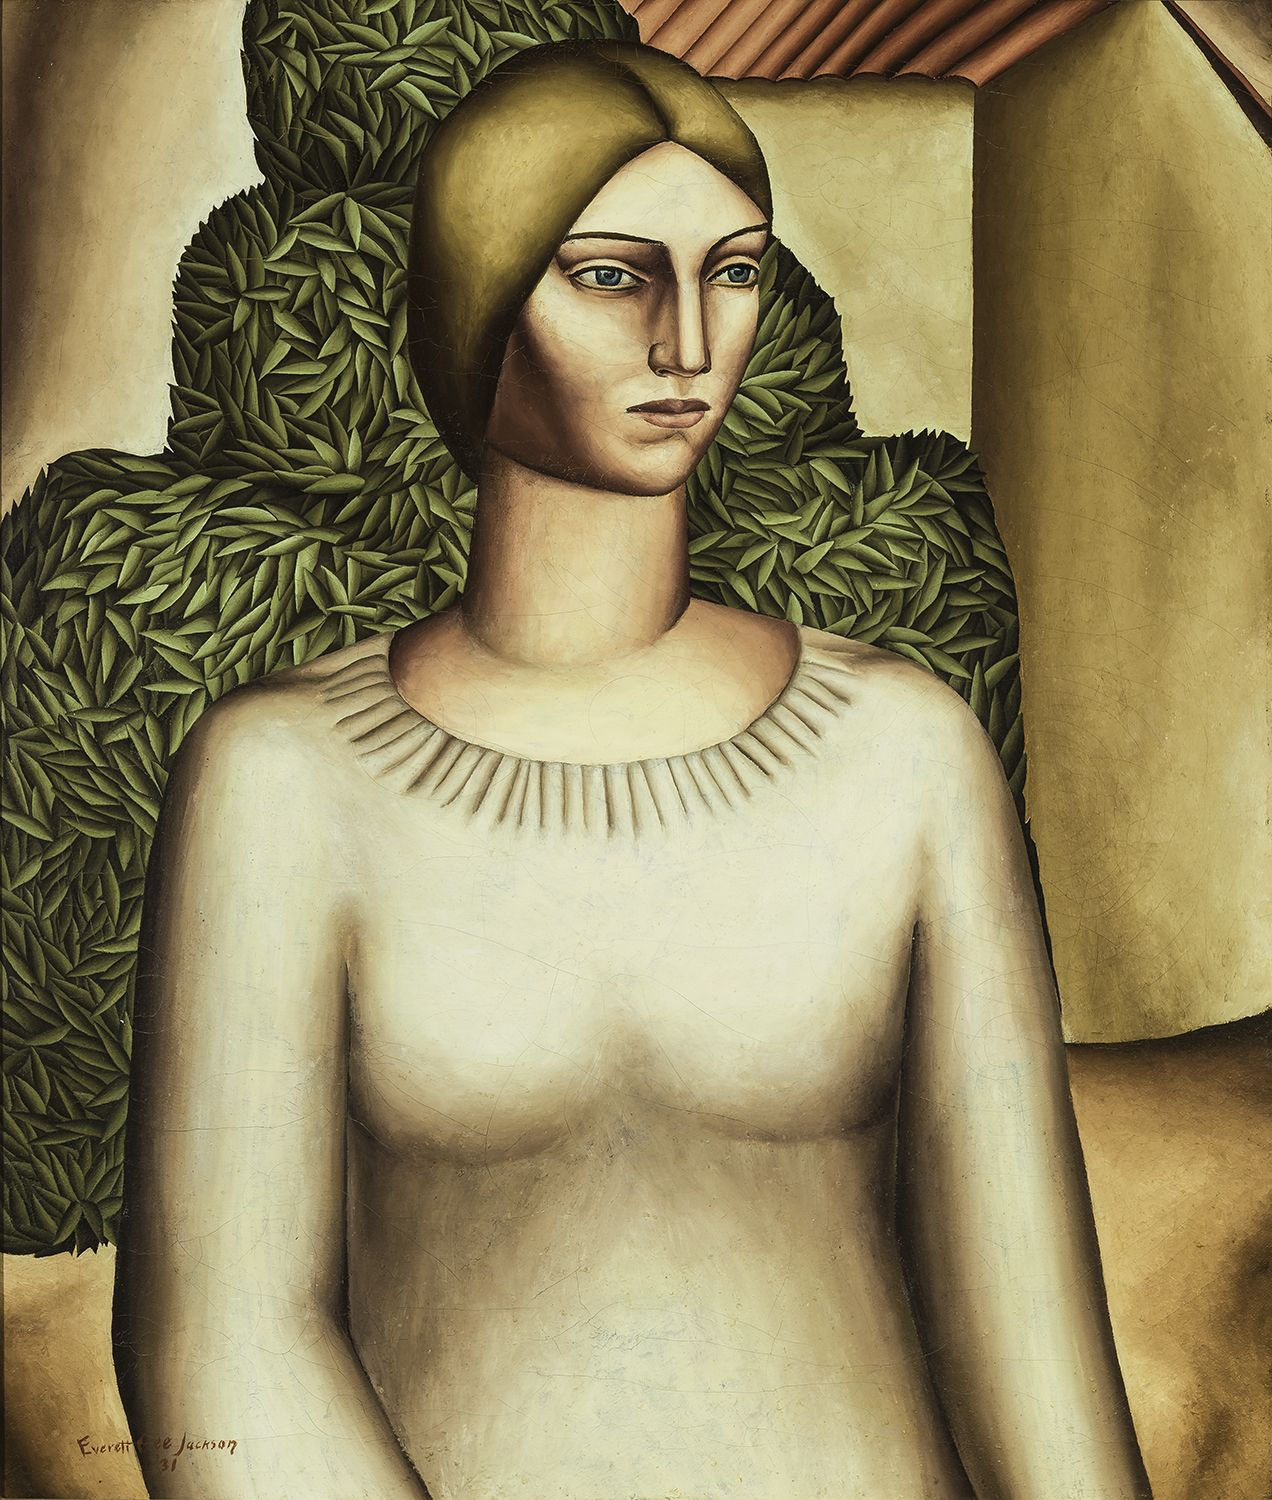 Girl with Acacia Tree, 1931, Oil on canvas, 27 x 23 in.